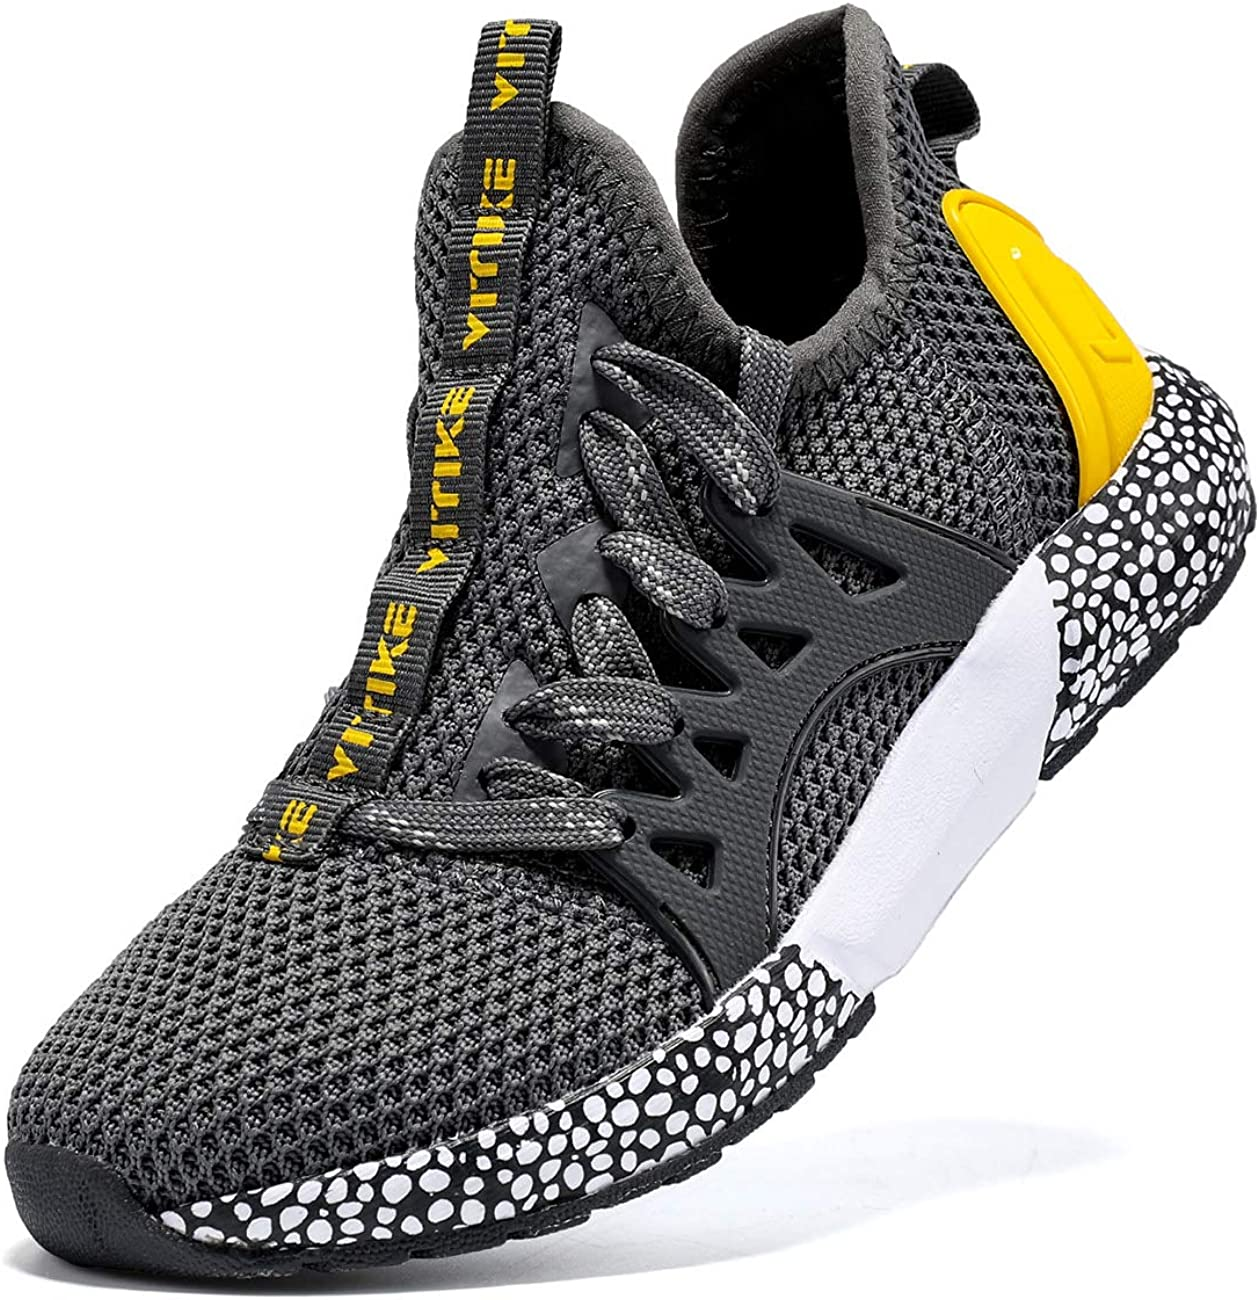 VITUOFLY Boys Sneakers Kids Running Shoes Girls Mesh Fitness Shoe Indoor Training Sneaker Lightweight Outdoor Sports Athletic Tennis Shoes for Little Kid/Big Kid